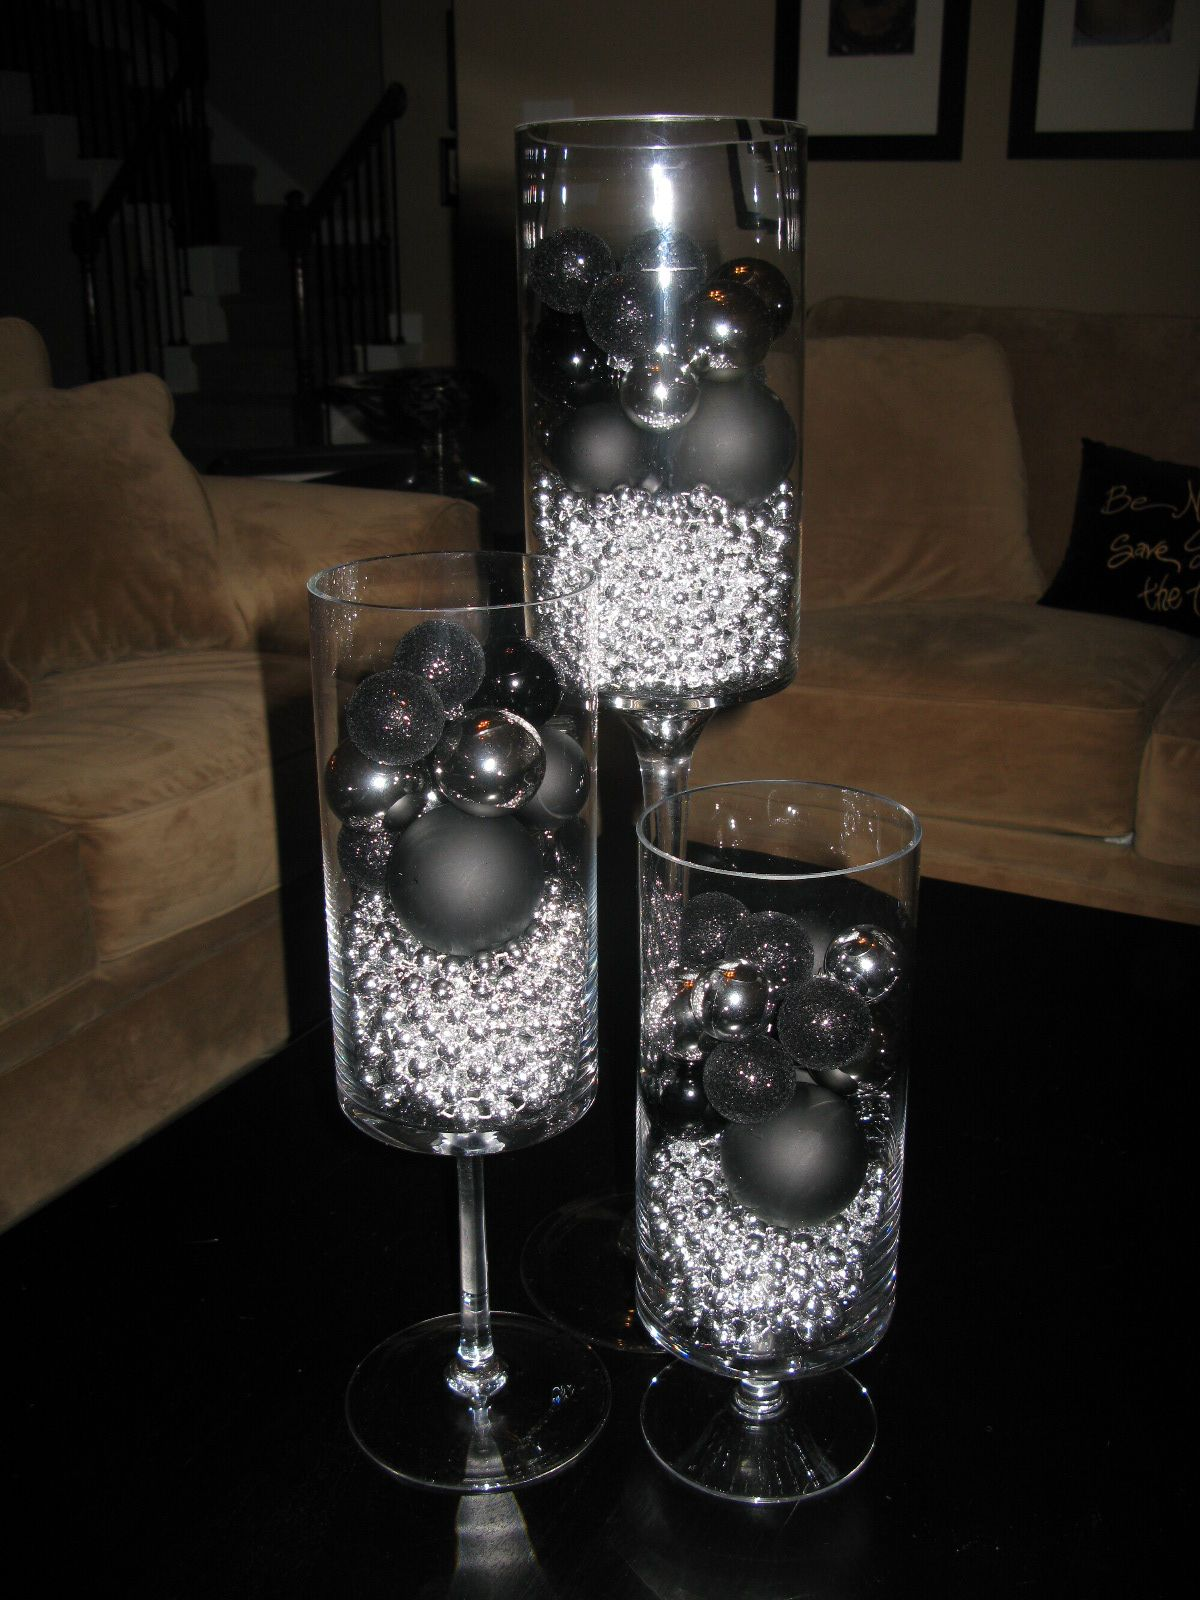 Coffee Table Dec R Christmas Whytaboo Style Pinterest